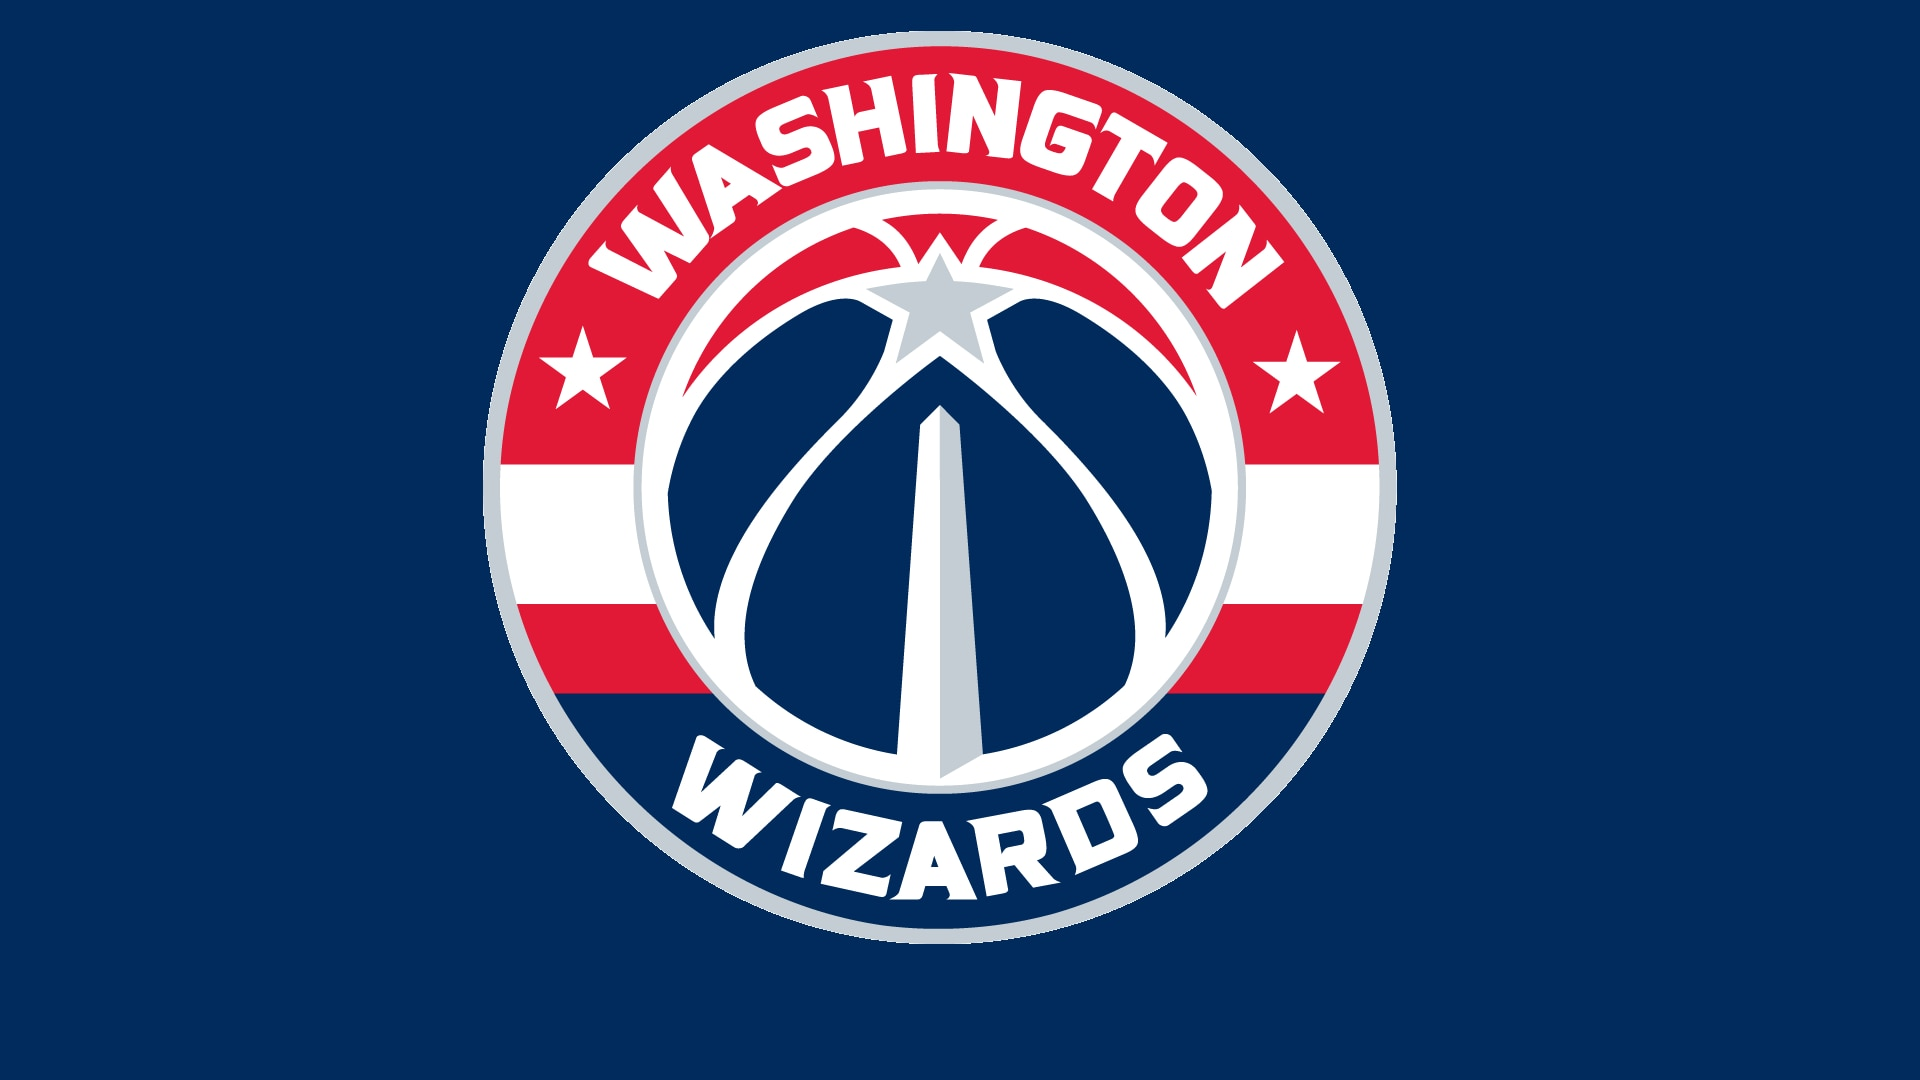 1533762448697 washingtonwizardslogo blueimages tab